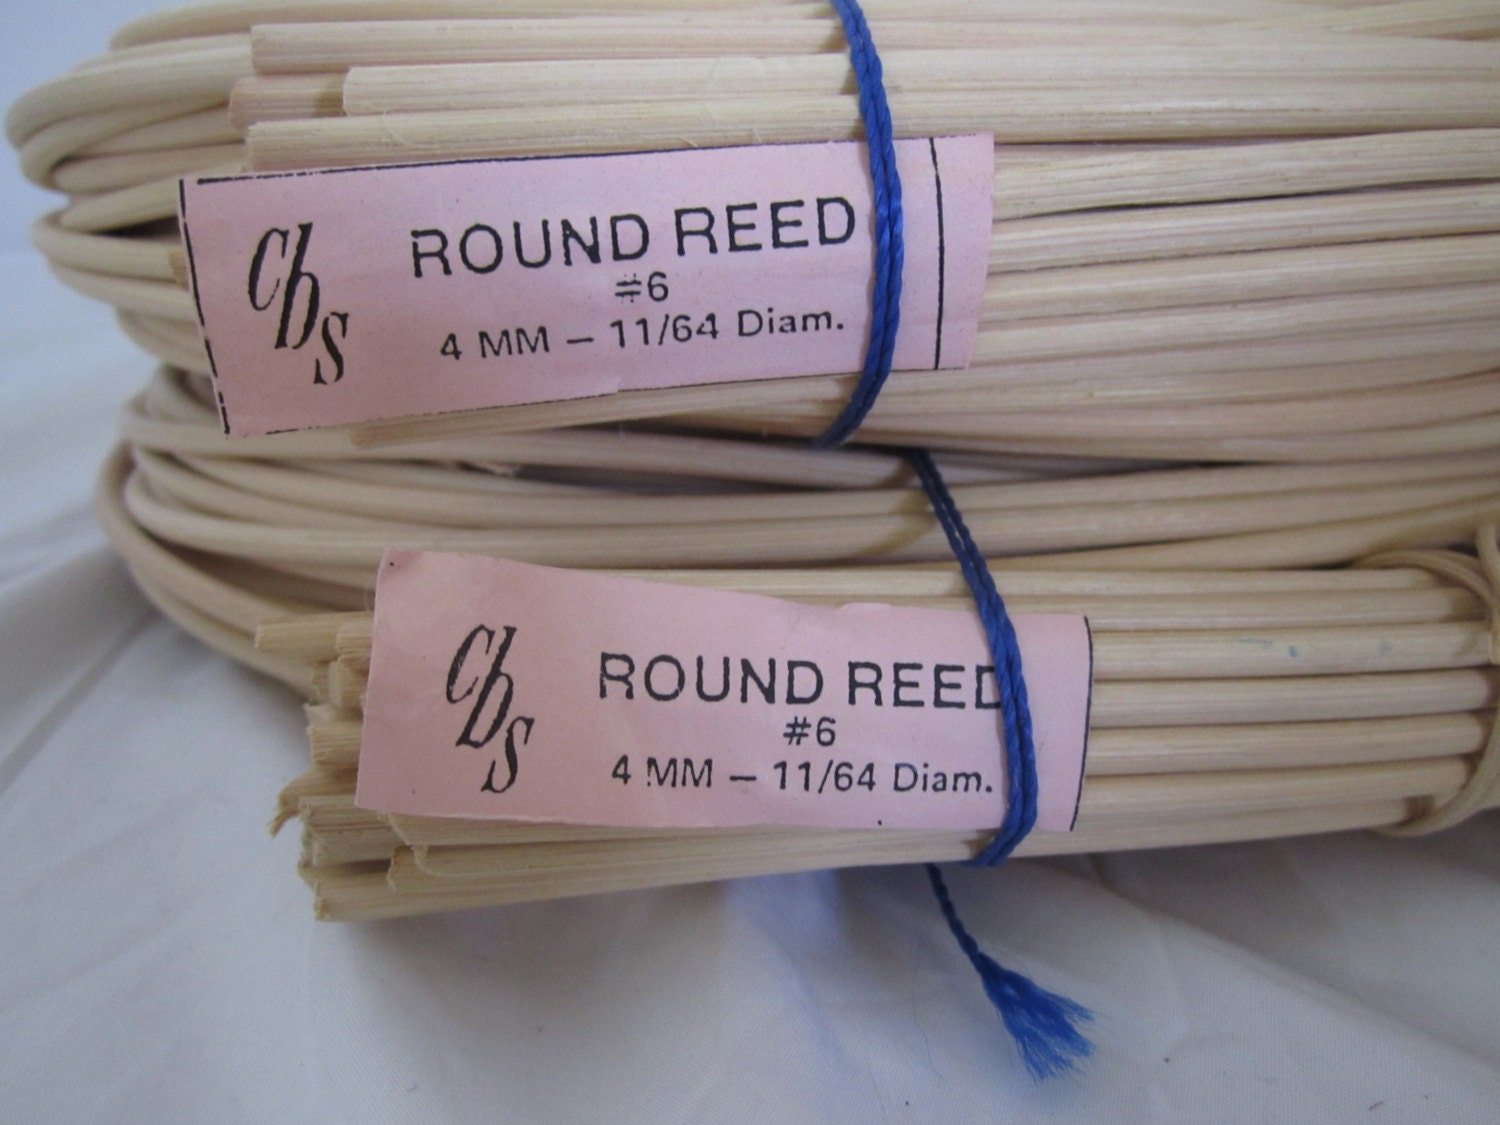 Basket Weaving Round Reed : Basket round reed pounds coils no mm weaving